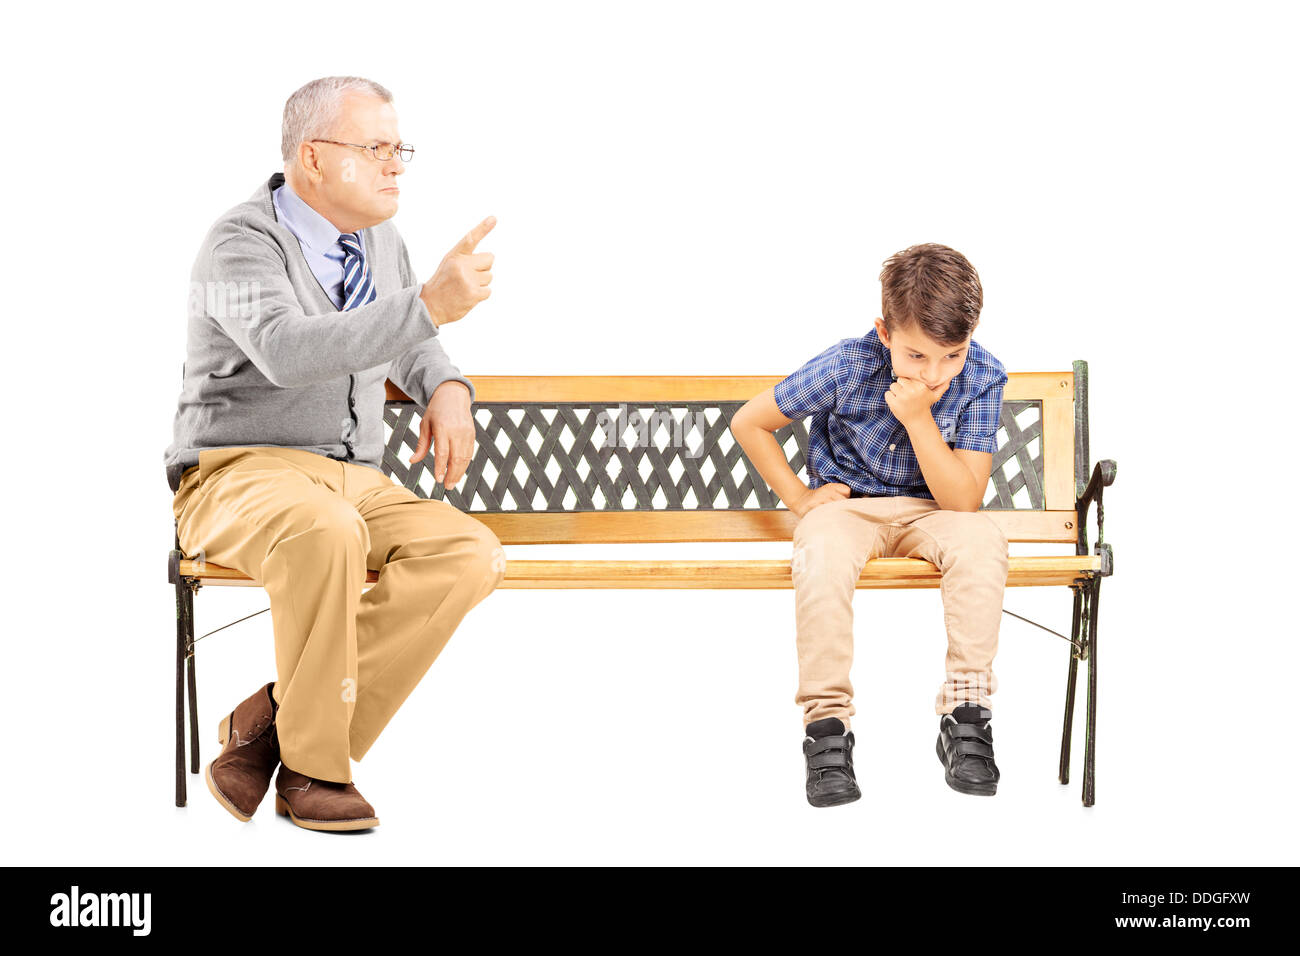 Angry grandfather shouting at his sad nephew, seated on a wooden bench - Stock Image